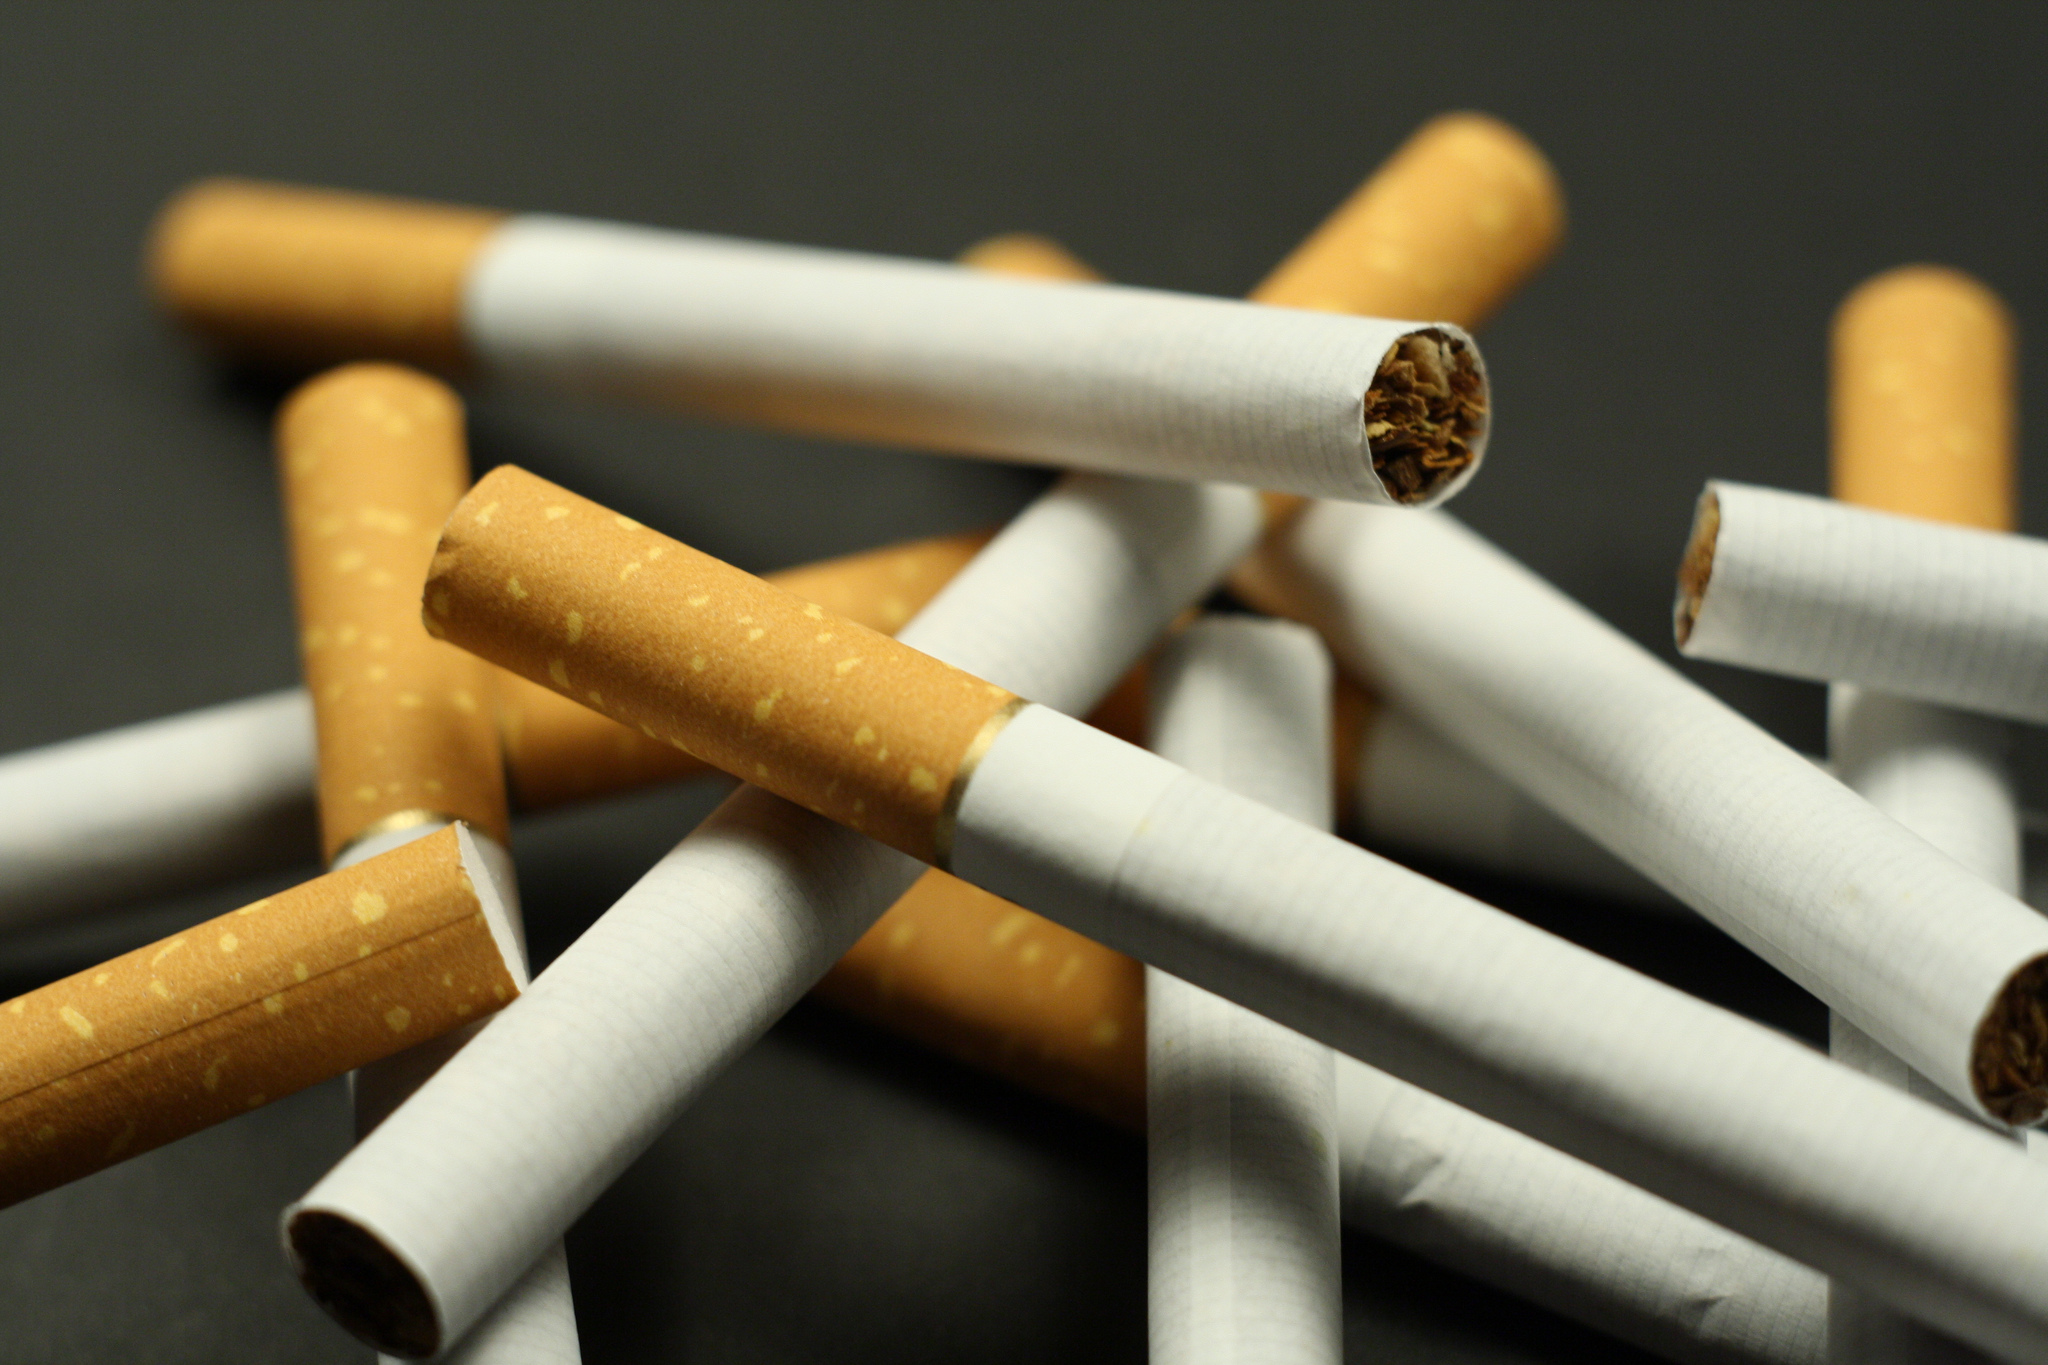 cigarette price rises